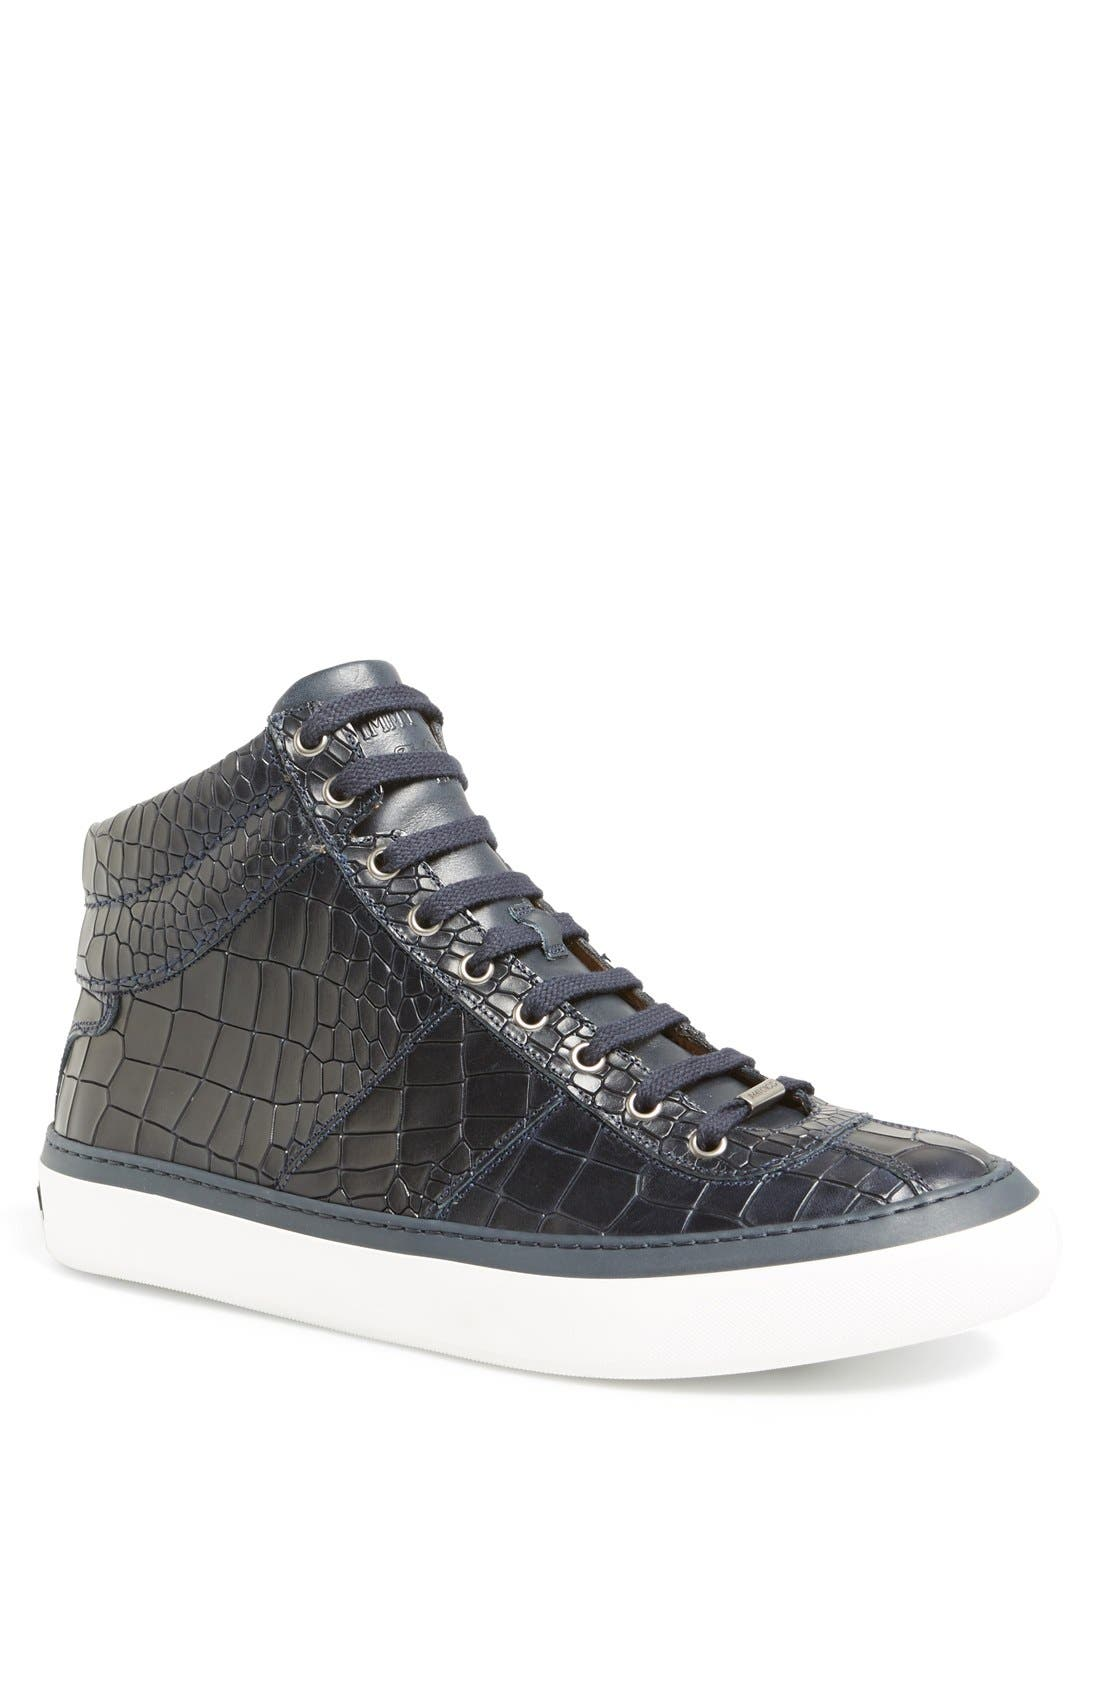 Belgravia High Top Sneaker,                             Main thumbnail 3, color,